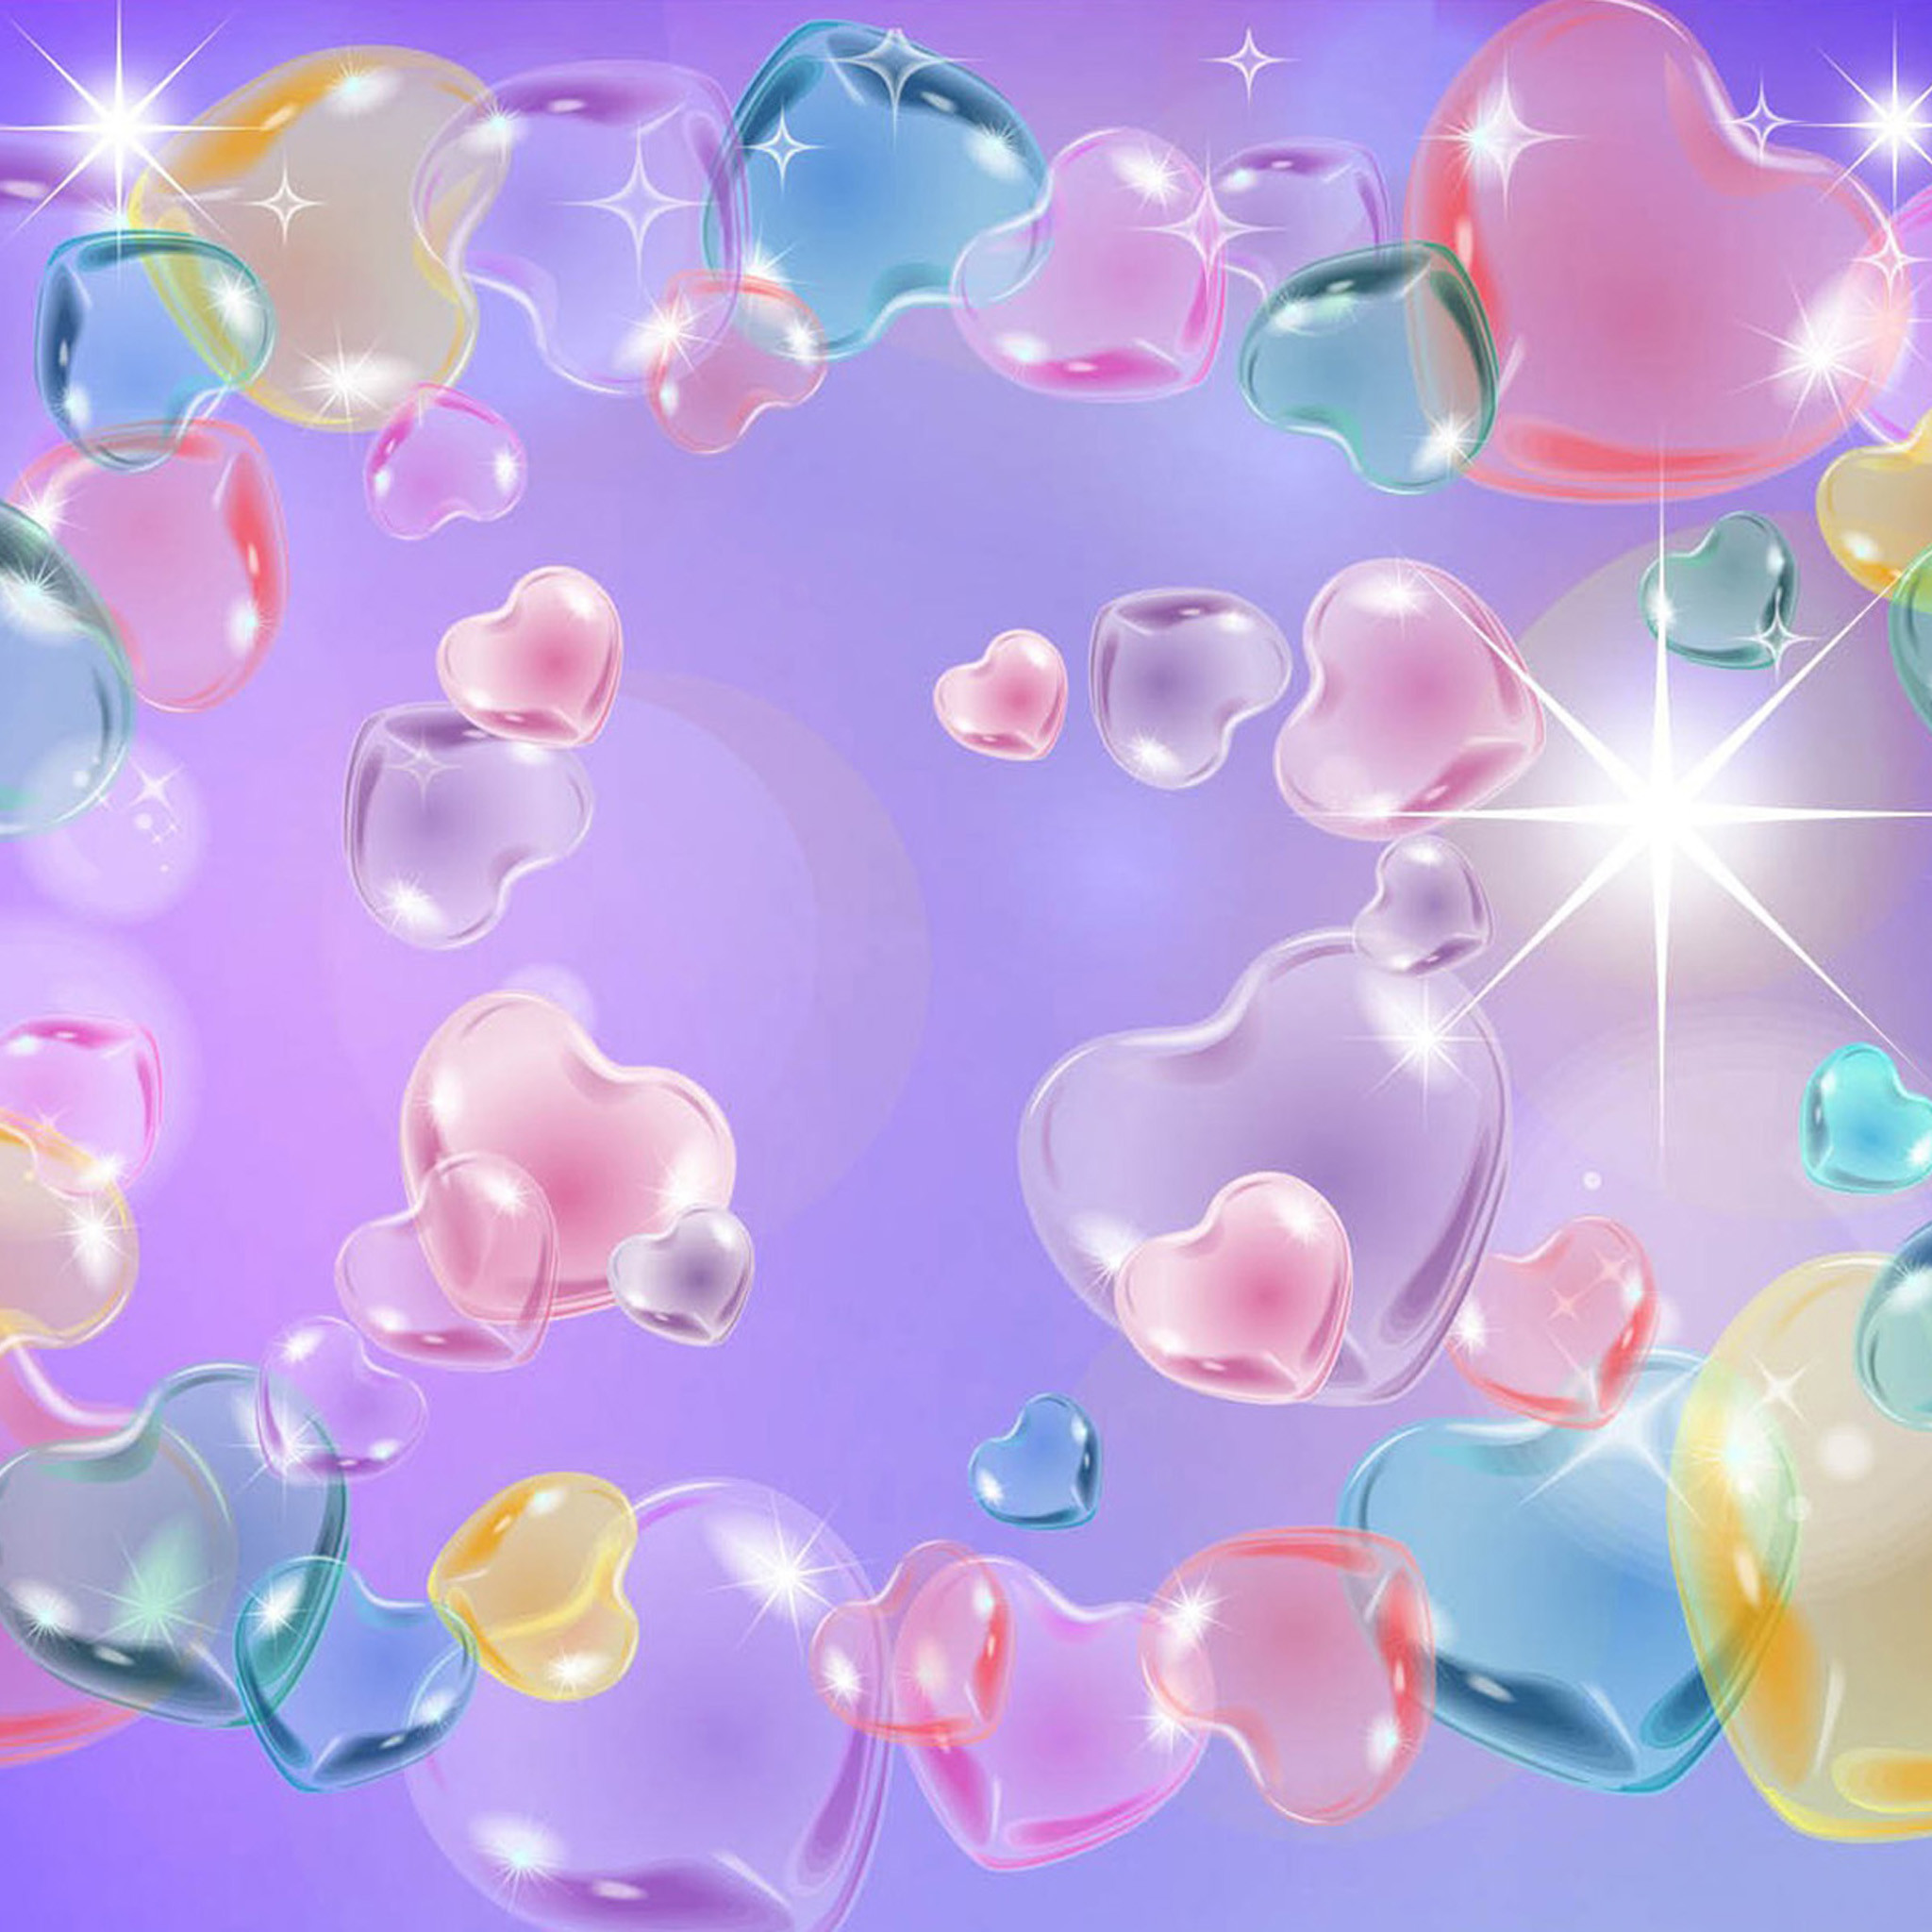 Colorful water bubbles wallpaper